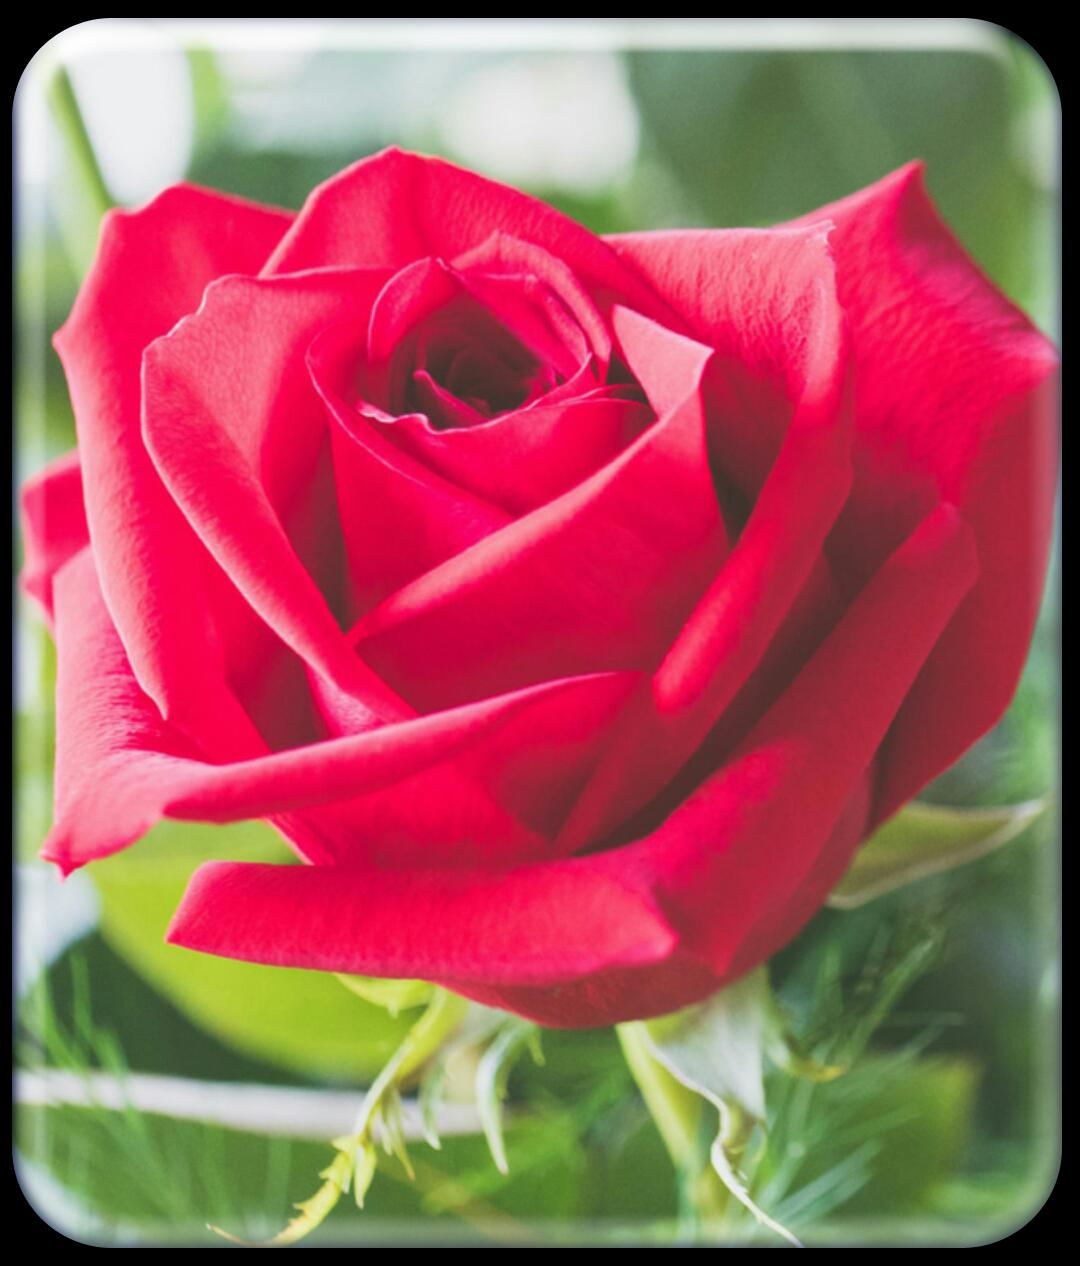 Red Rose Wallpaper Hd For Android Apk Download